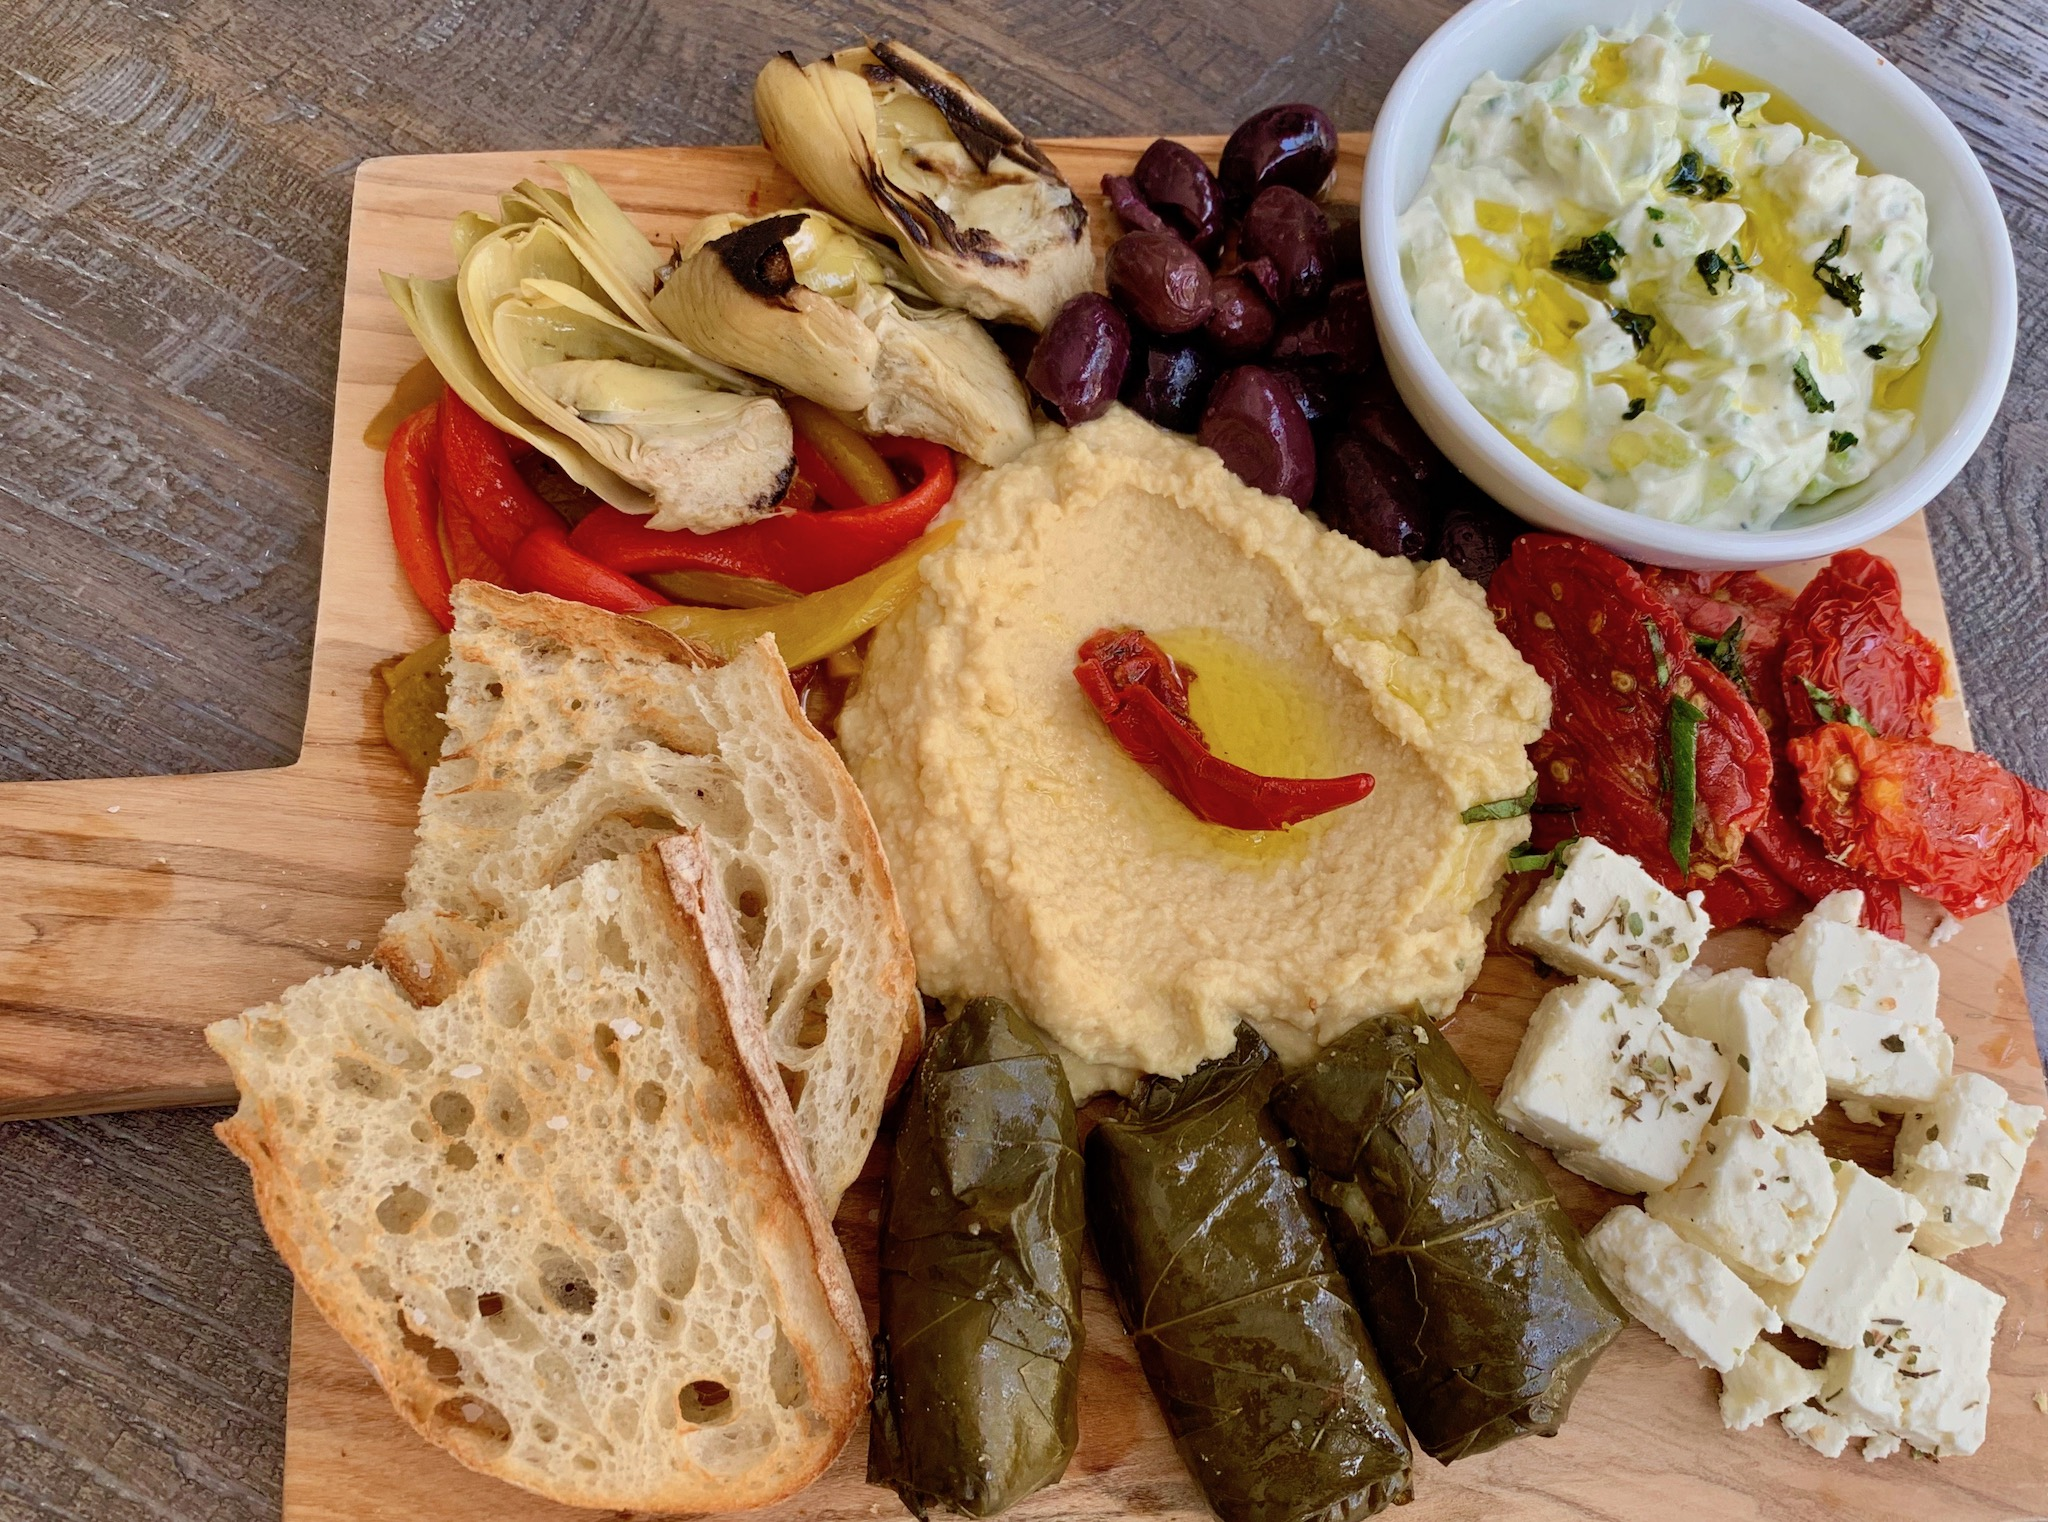 Mezze Platter at Bacchus brunch